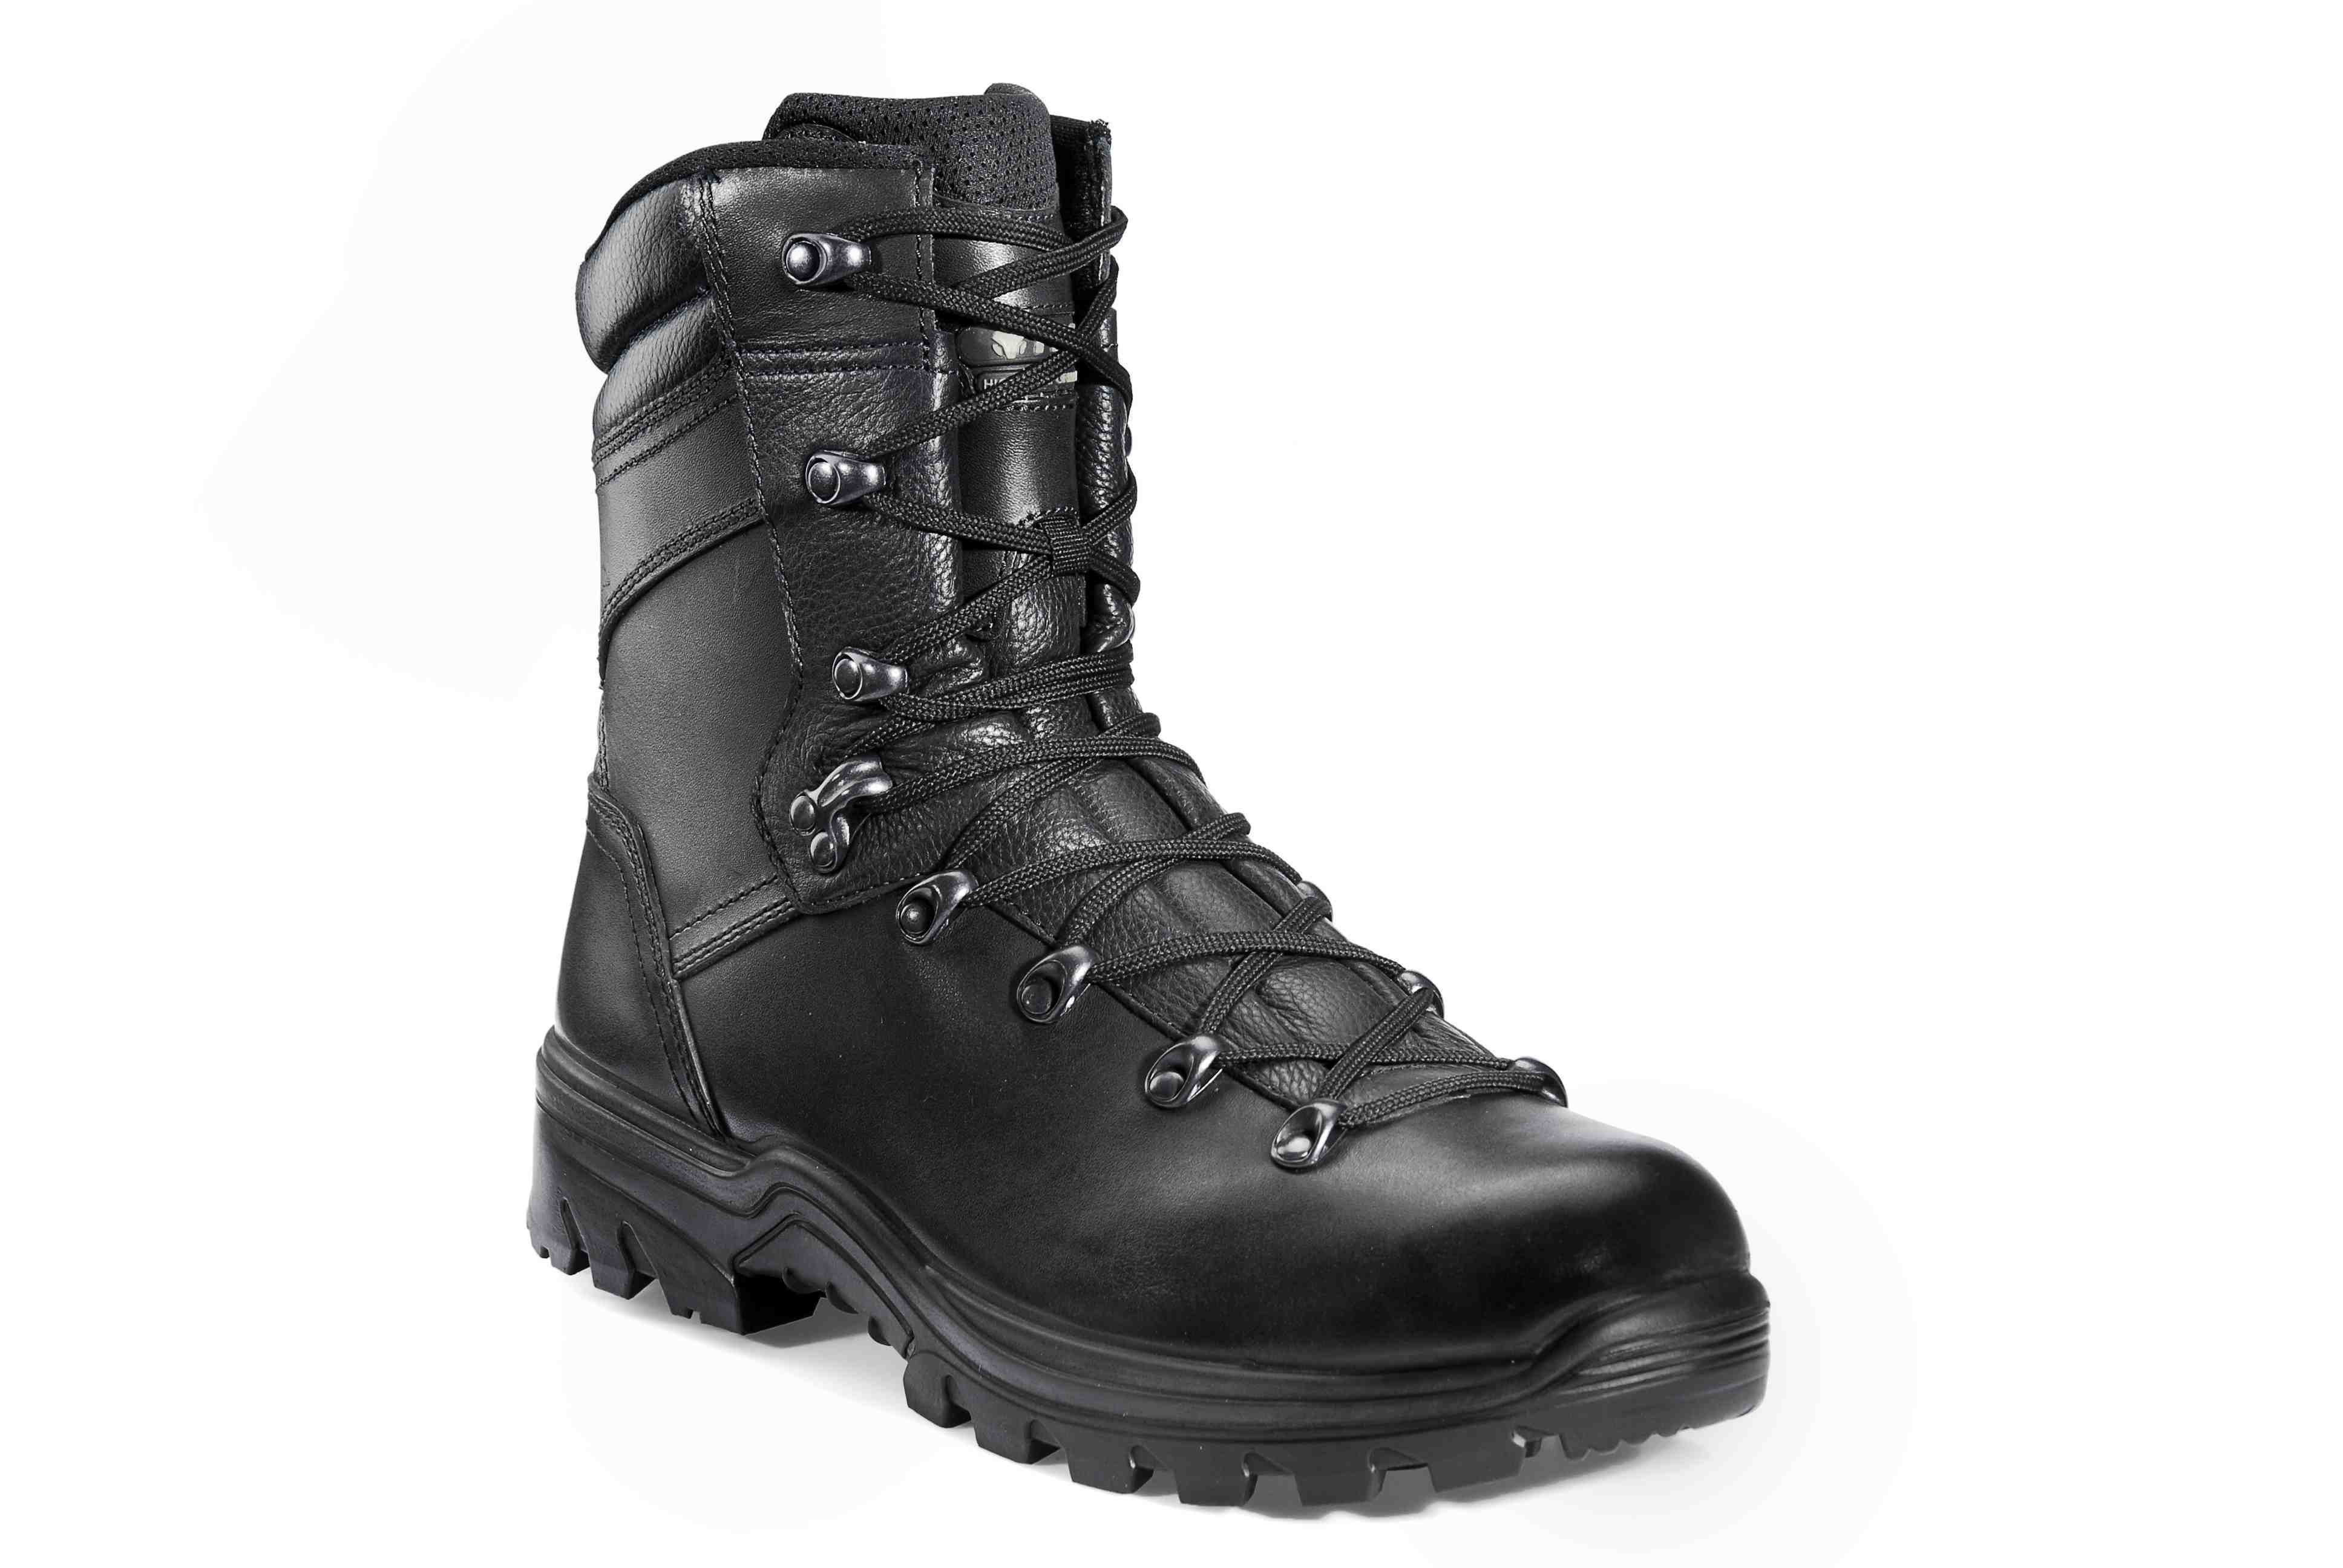 LeBOCK YDS Thor Combat Boot 02 HRO WR FO